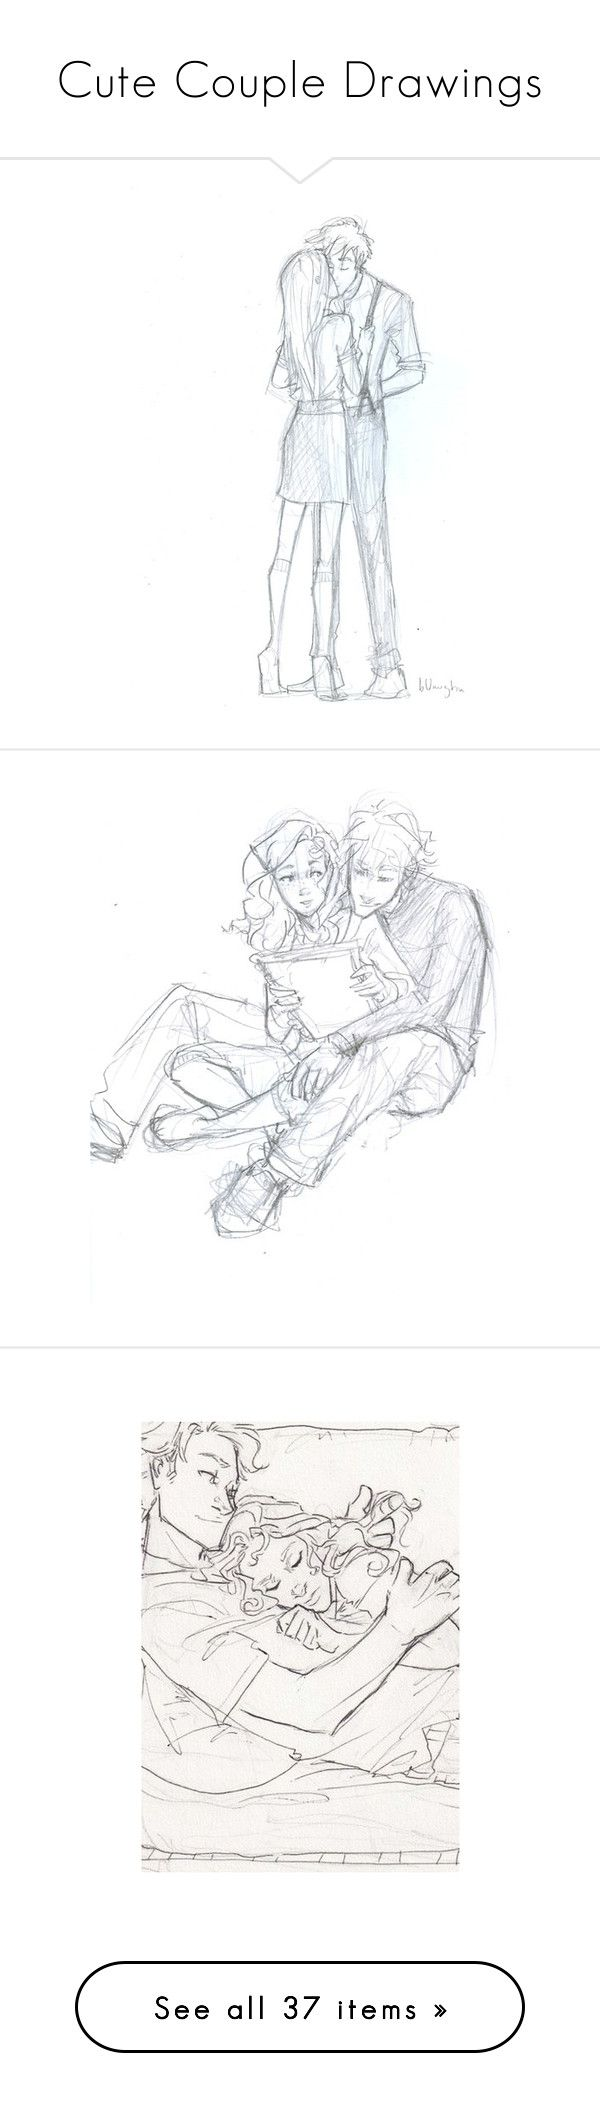 """""""Cute Couple Drawings"""" by musicdreamlove ❤ liked on Polyvore featuring drawings, fillers, drawing, couples, doodles, pictures, sketches, phrase, quotes and saying"""